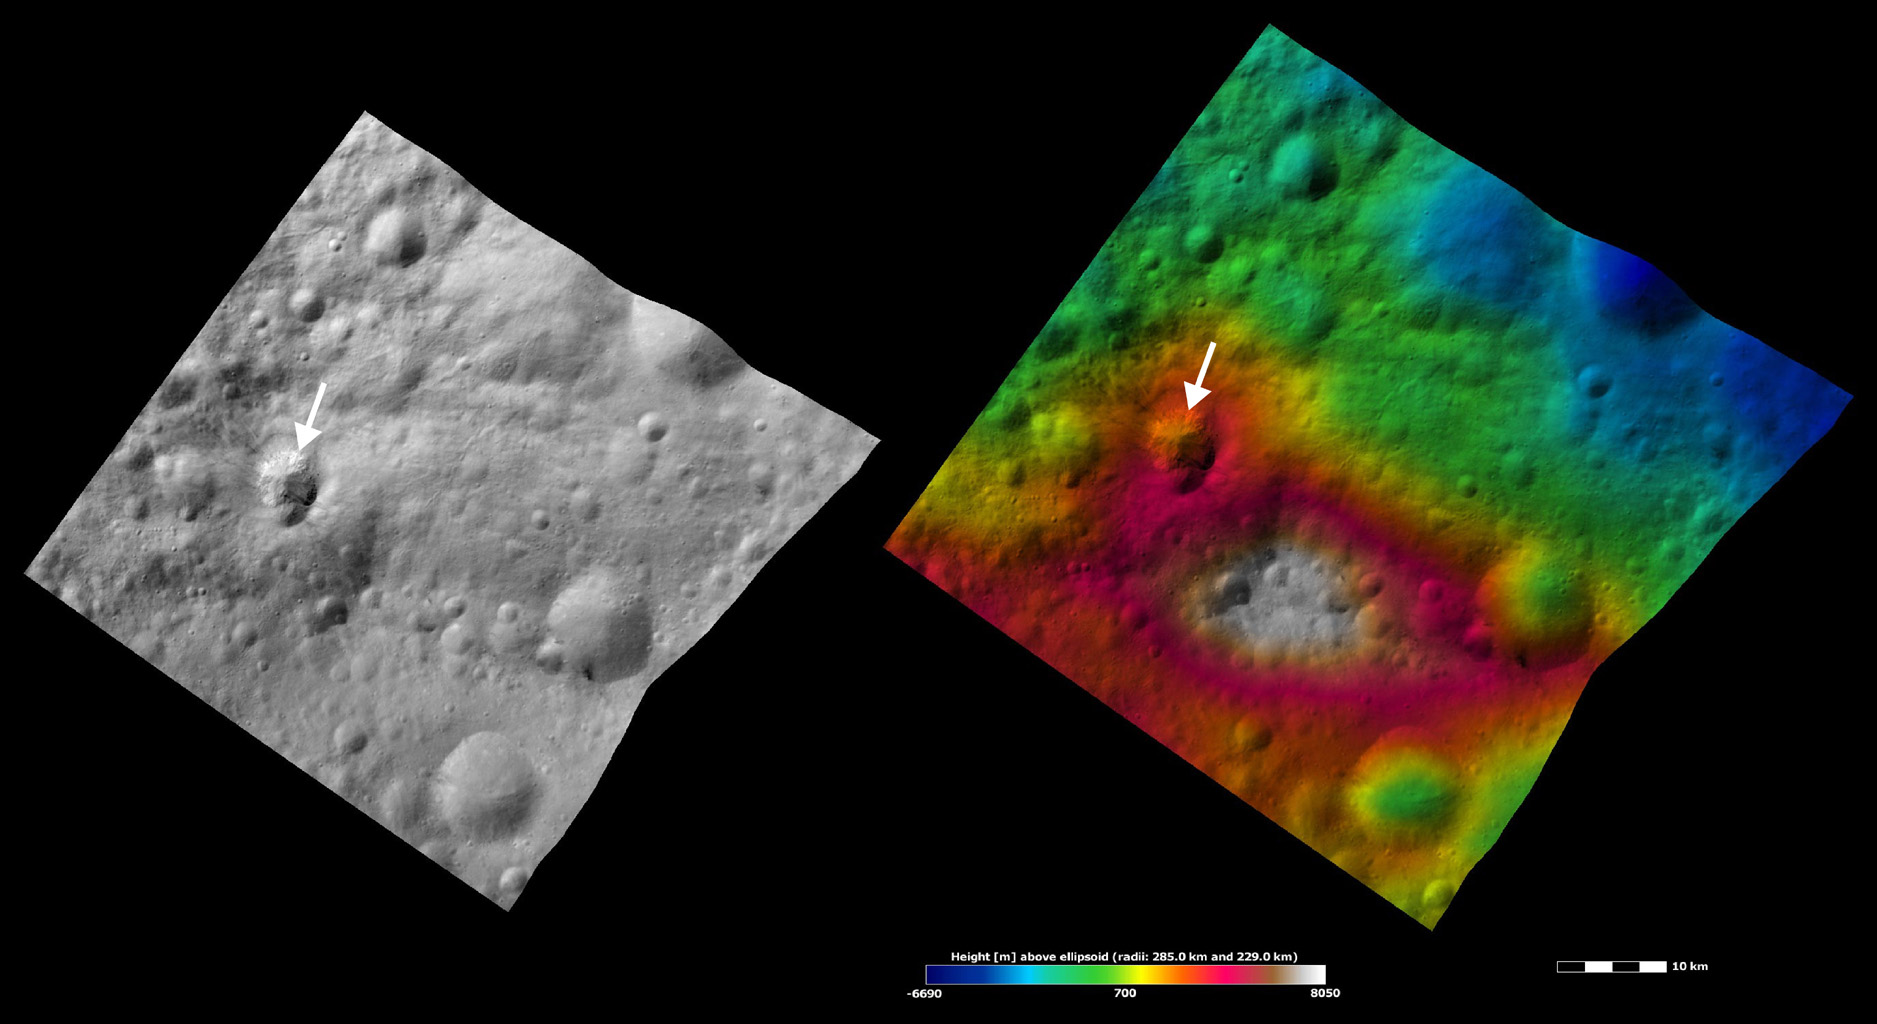 Apparent Brightness and Topography Images of Teia Crater